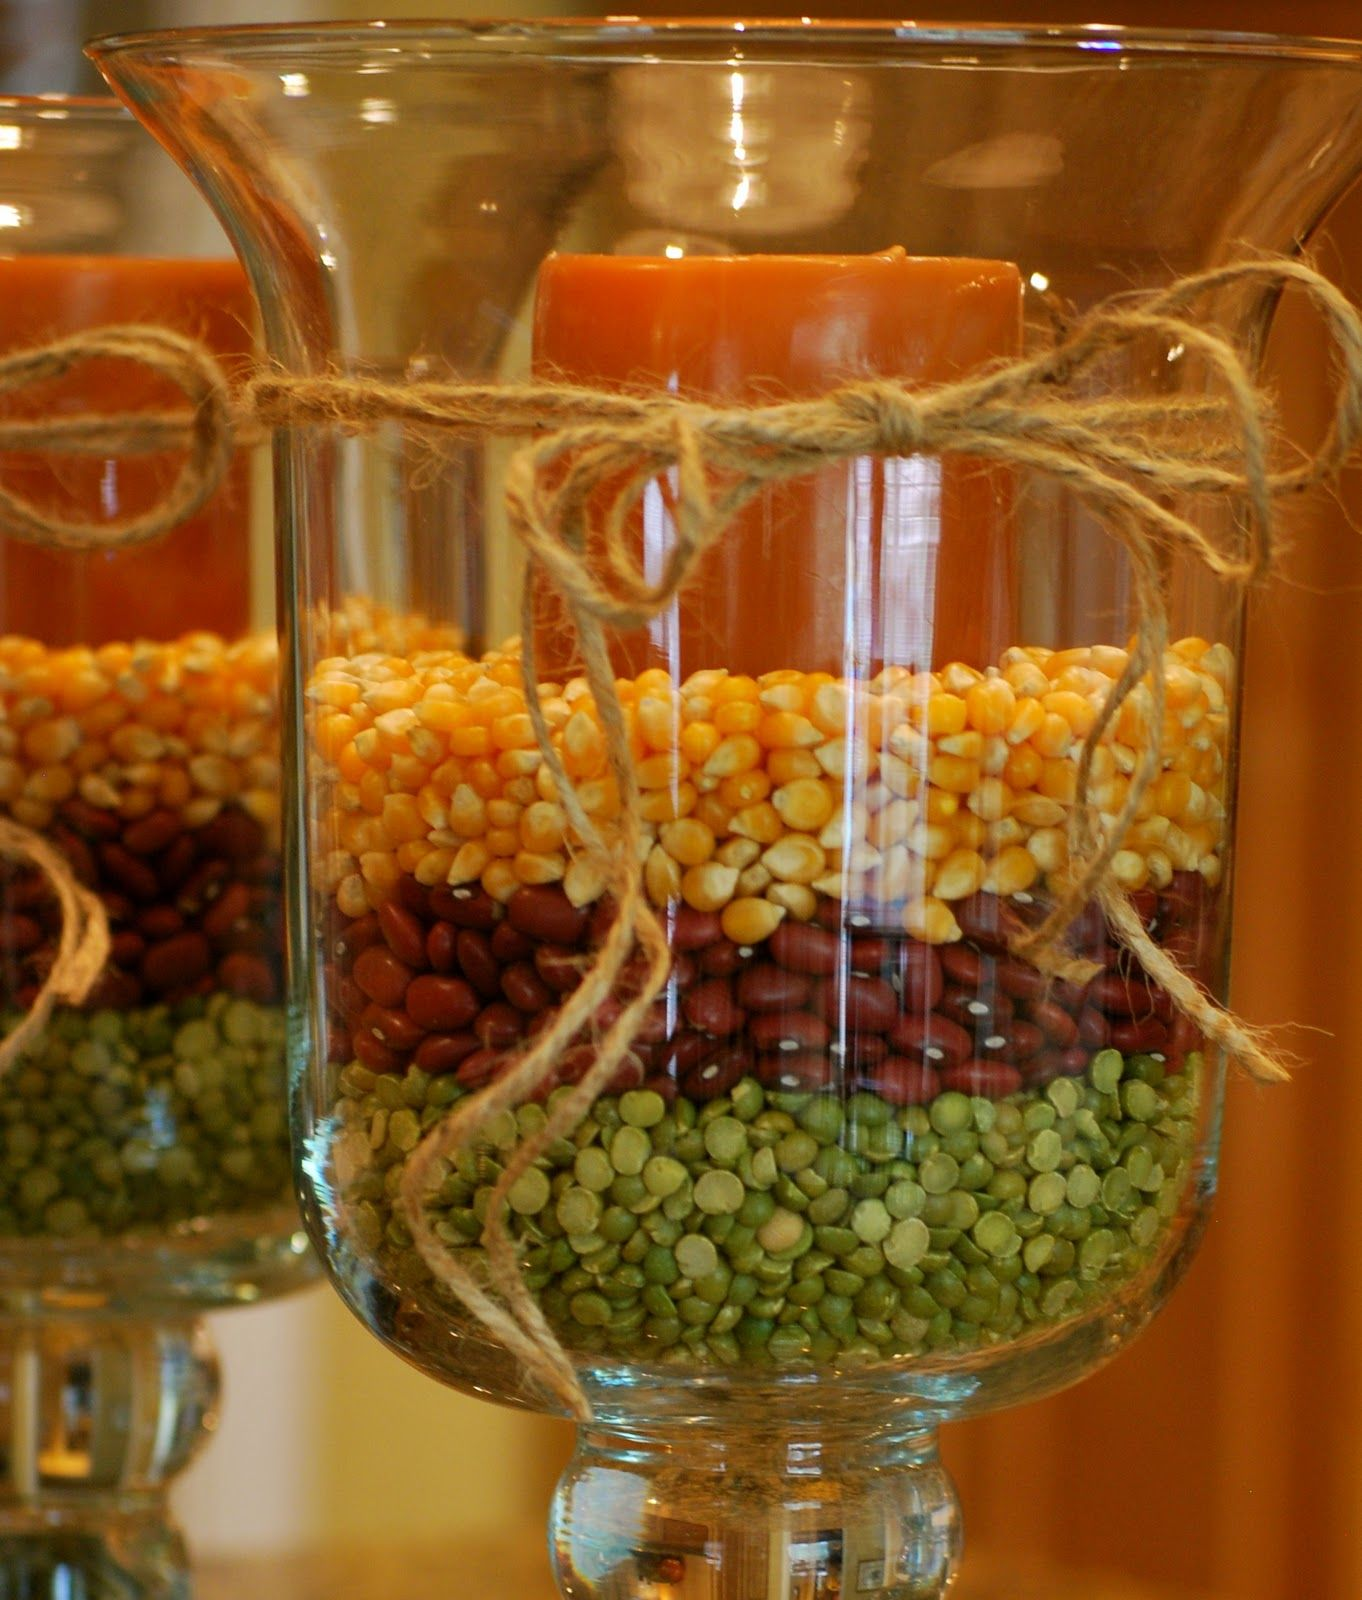 Hurricane glasses filled with dry split peas, red beans and corn kernels never looked so good! PERFECT fall decor!